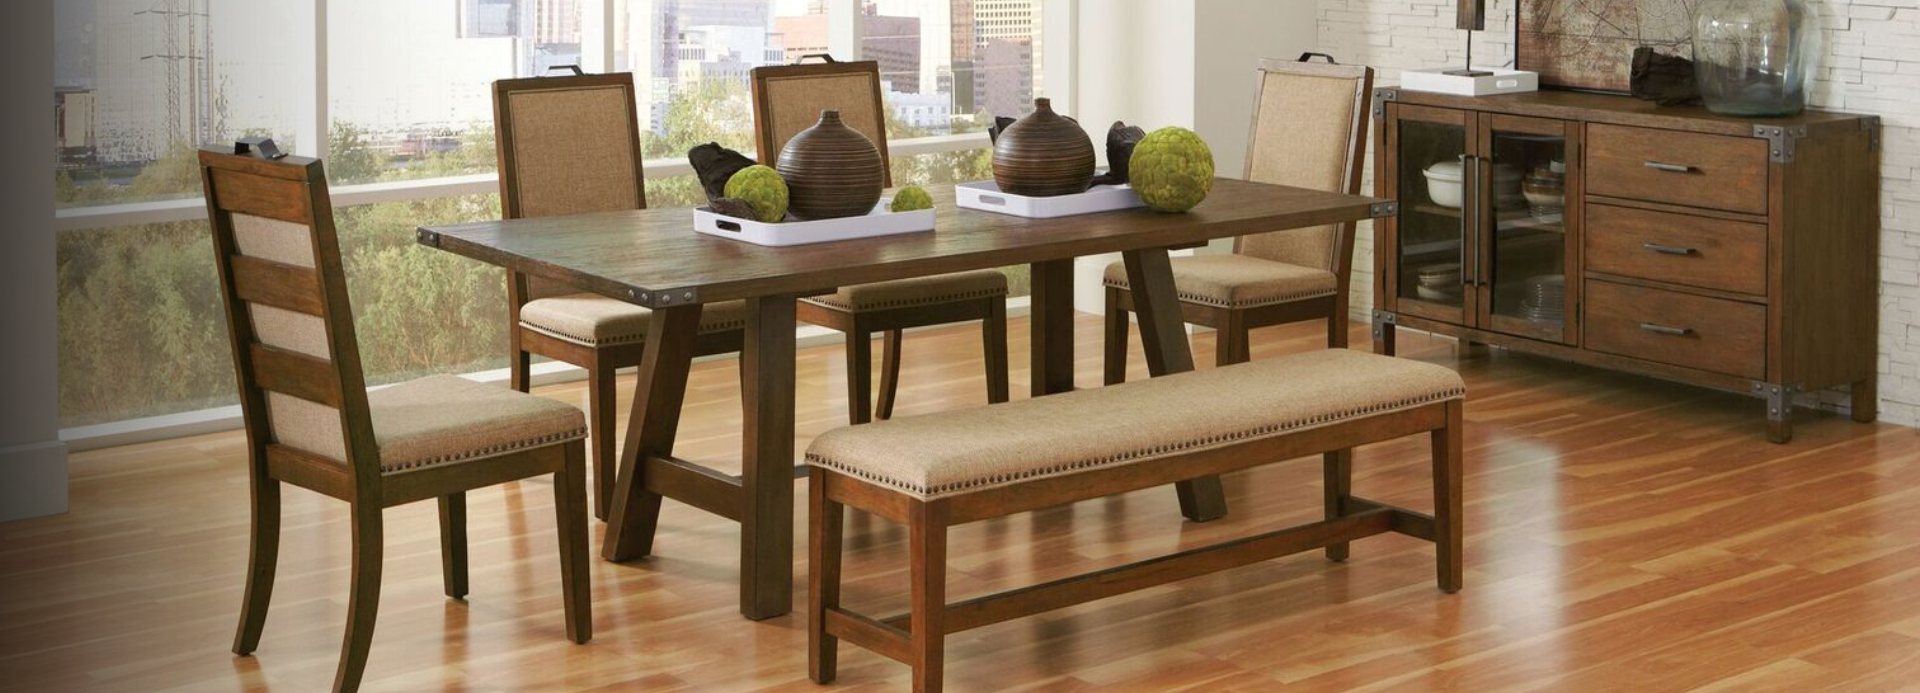 Coaster Home Furnishings dining room furniture